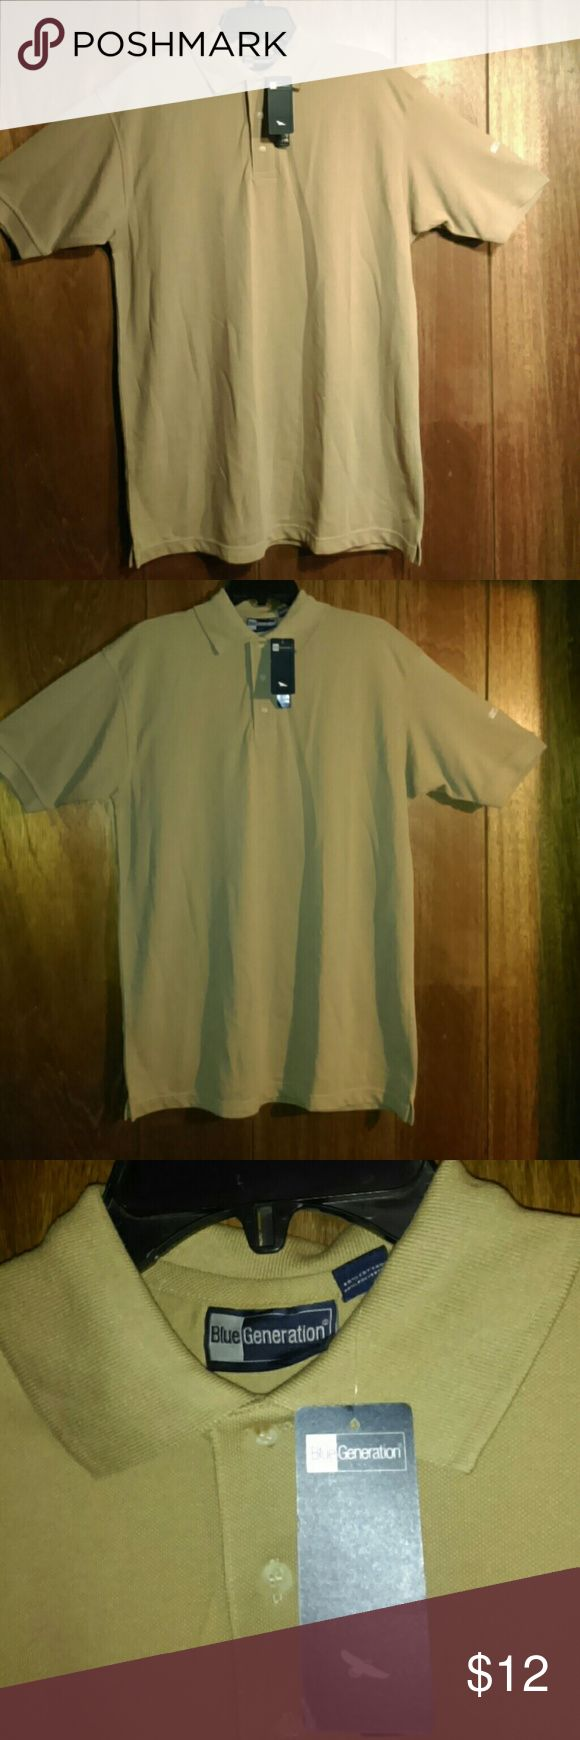  Men's Polo Golf Shirt - M New with tags beige short sleeved polo shirt. This shirt is a men's size medium, which would fit a women's size large. It has a small white company logo on the left sleeve, which is pictured. Super comfy and washes and dries very well. Blue Generation Shirts Polos